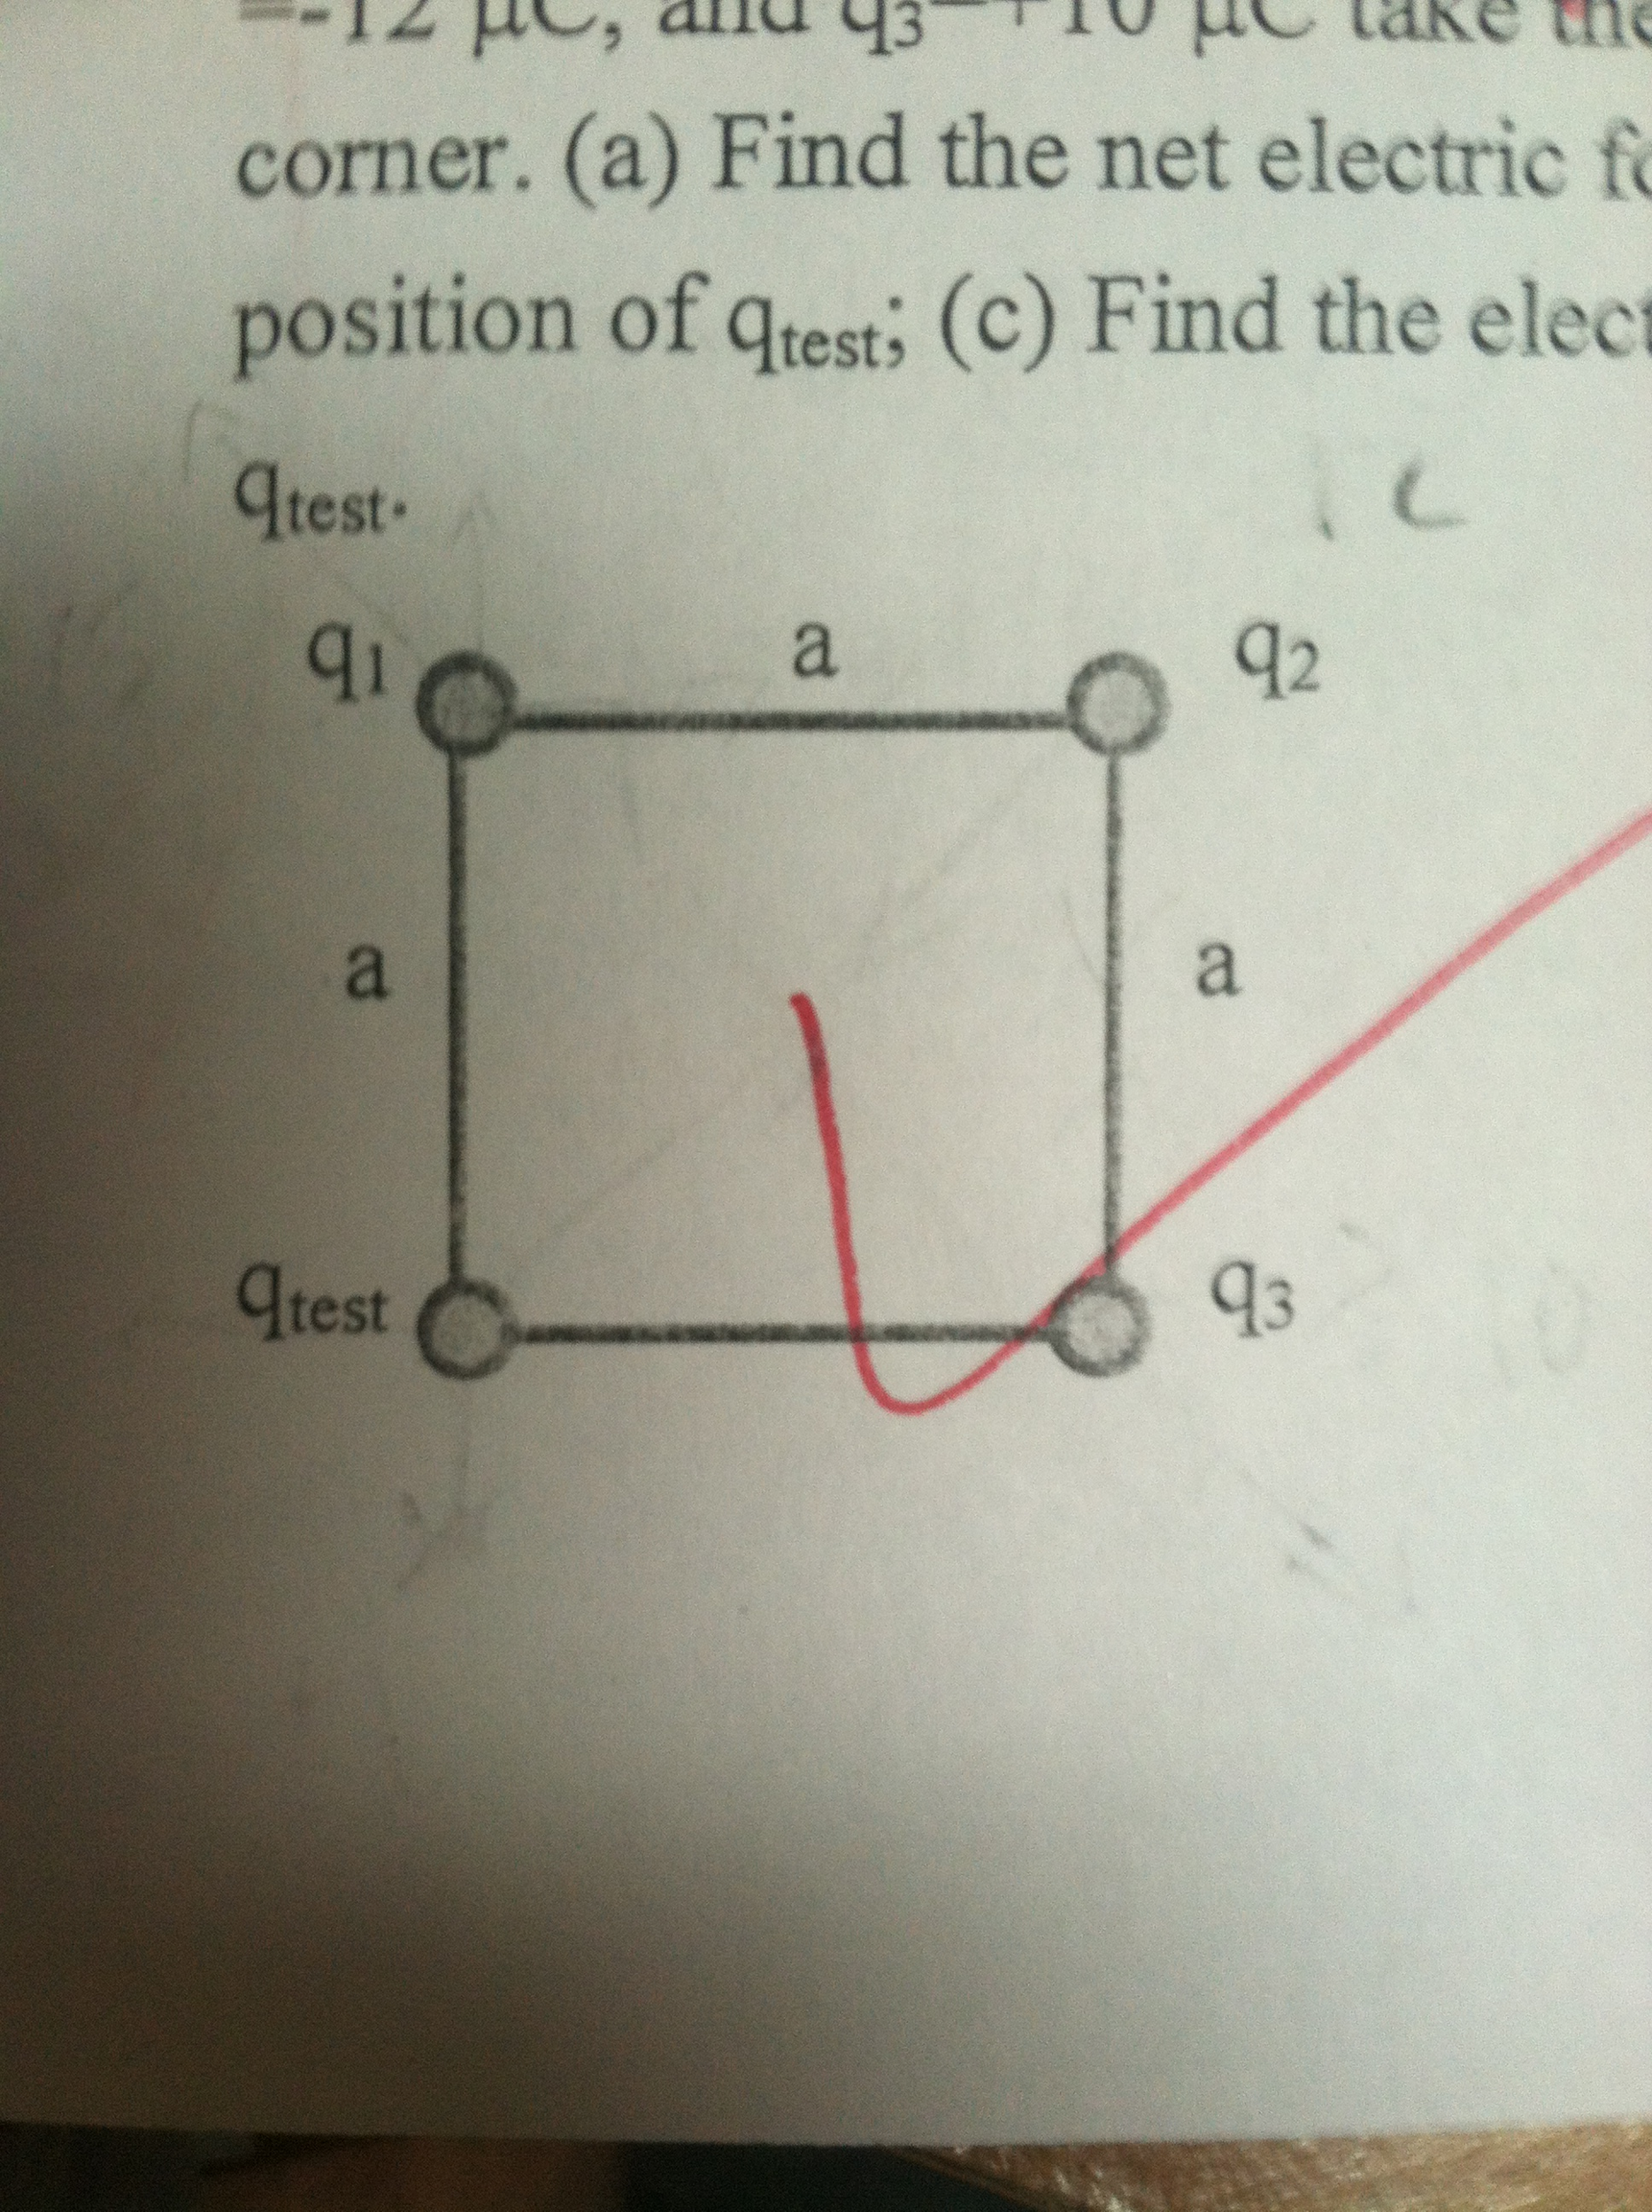 corner(a)Find the net electric position of qtest;